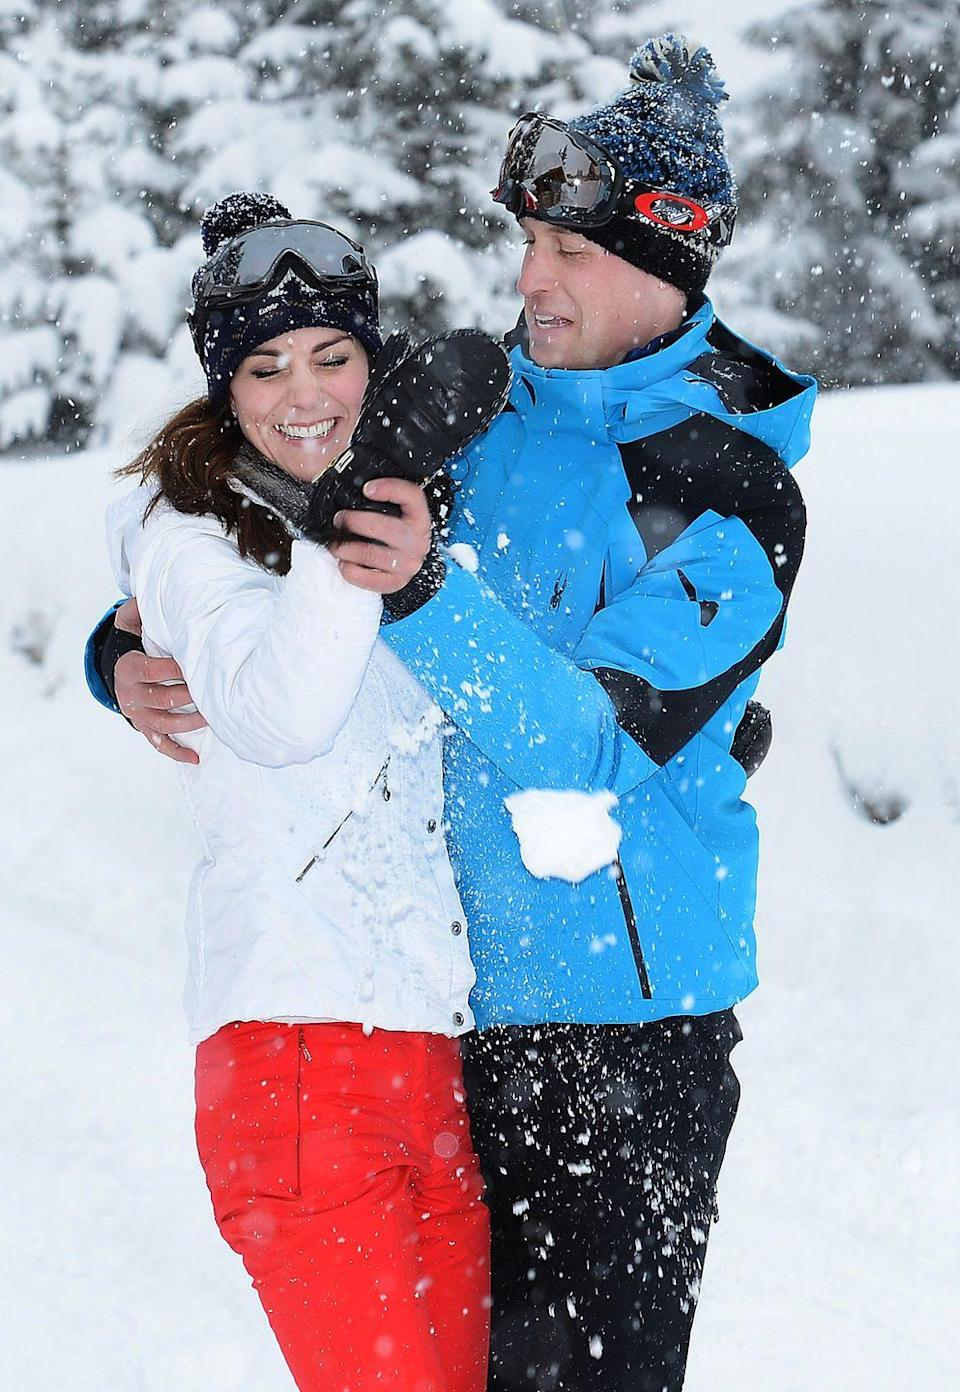 <p>The royal family hit the snowy slopes in the French Alps and William couldn't resist a little snowball fight with his wife. Don't they look adorable?</p>